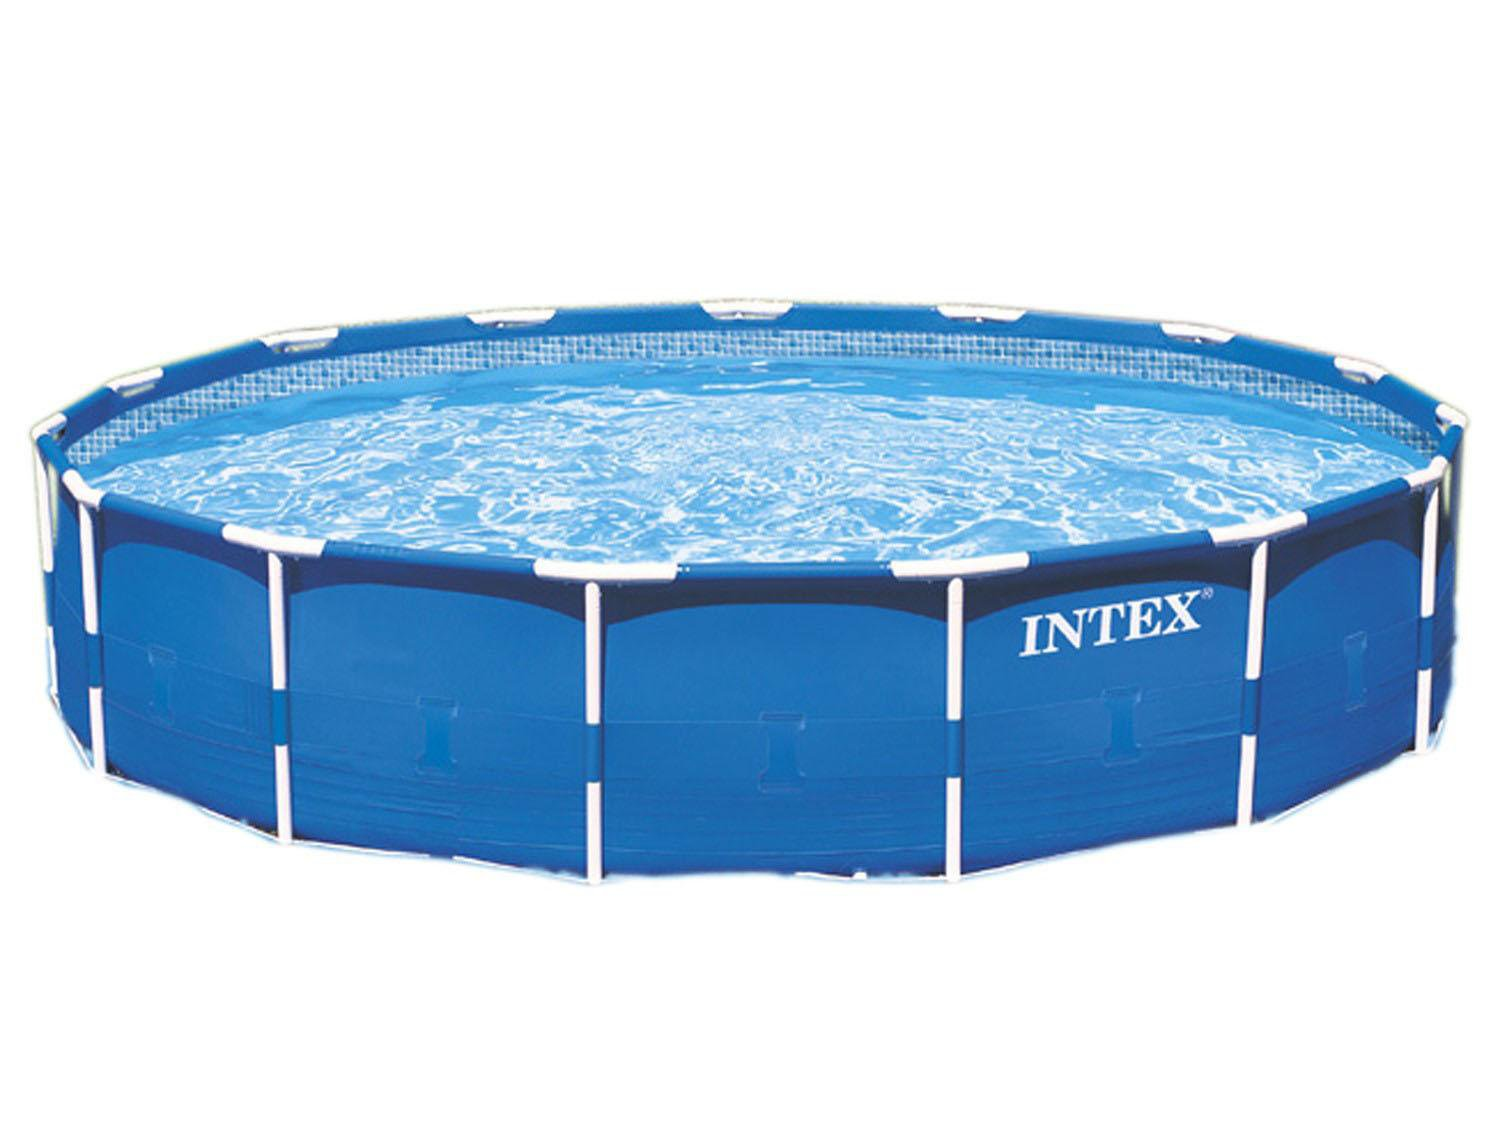 Fotos de piscinas intex oval imagenes picture car for Filtros para piscinas